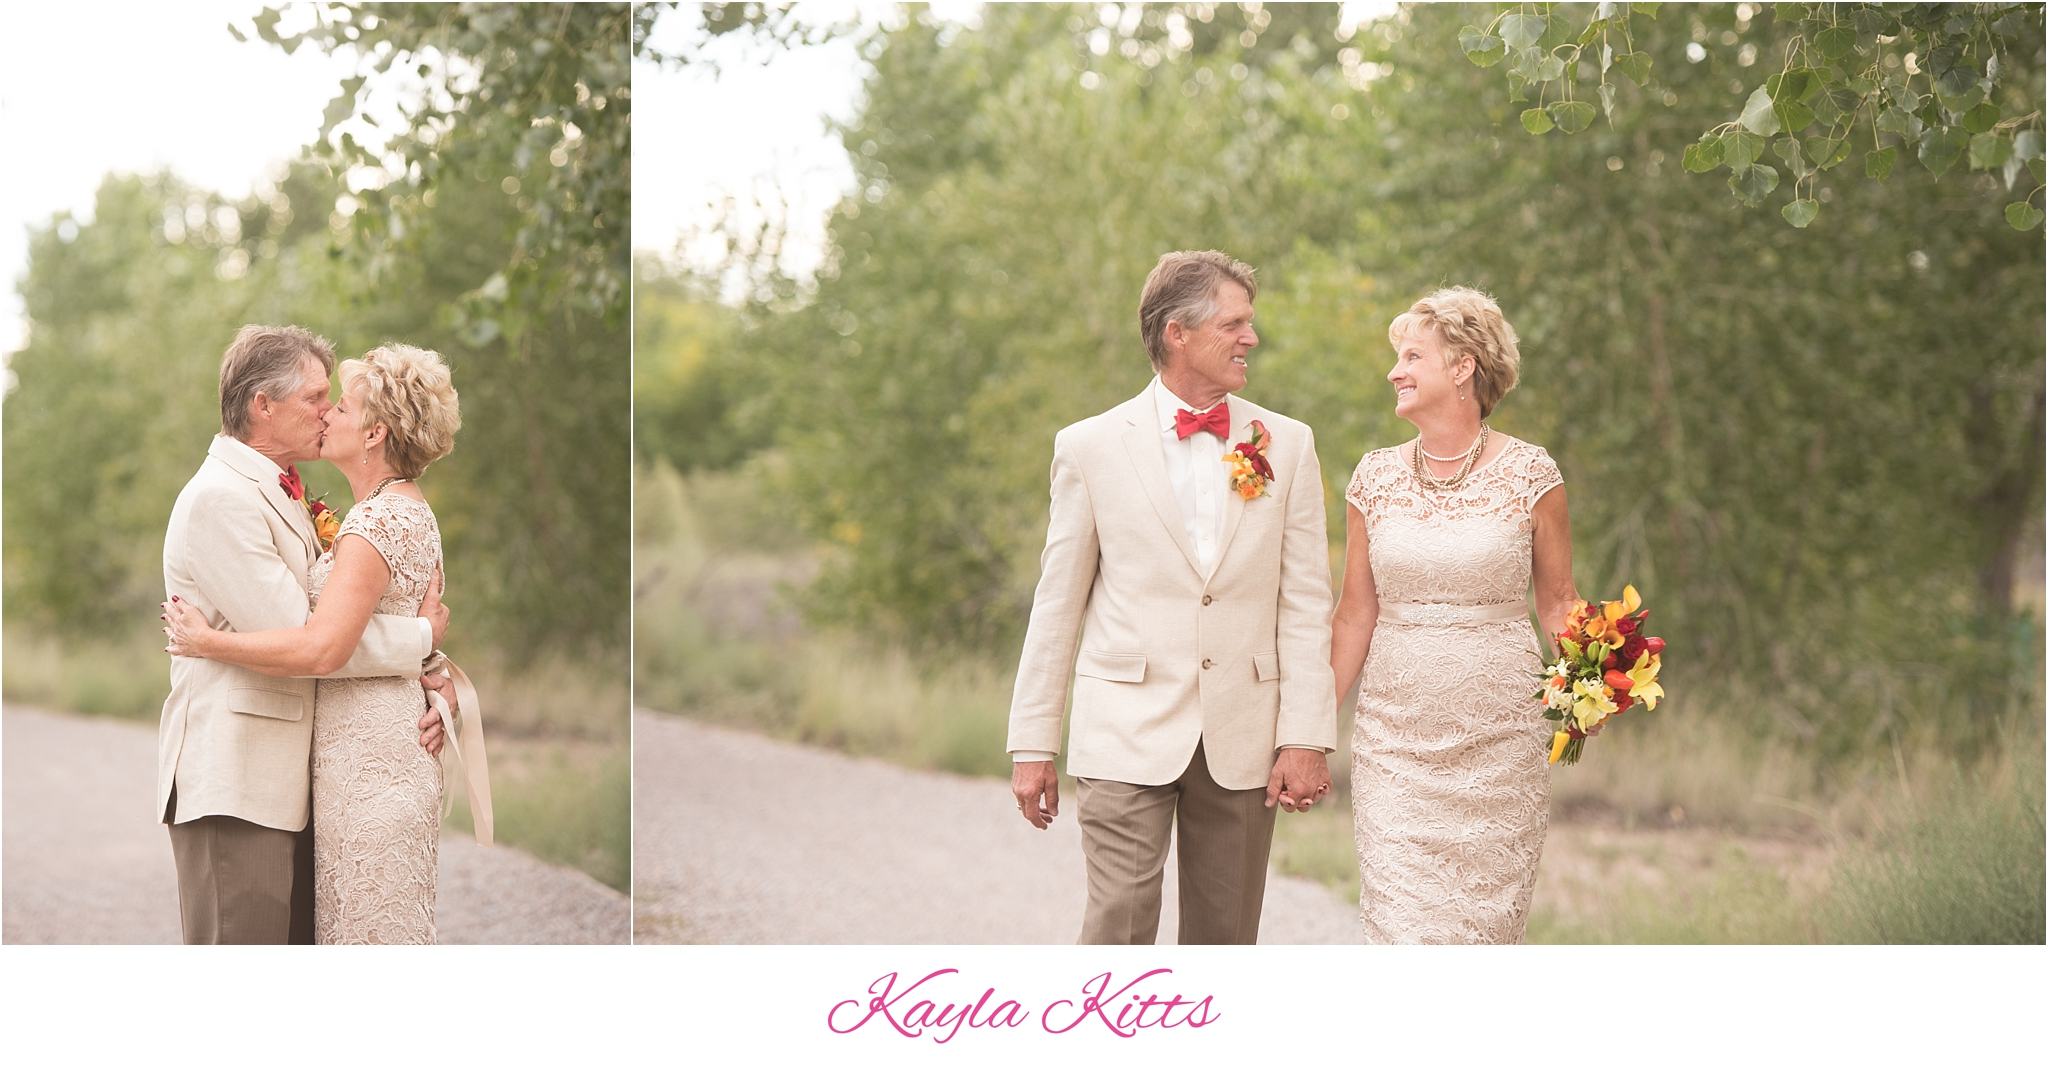 kayla kitts photography - albuquerque wedding photographer - albuquerque wedding photography - albuquerque venue - hyatt tamaya - hyatt tamaya wedding - new mexico wedding photographer_0051.jpg